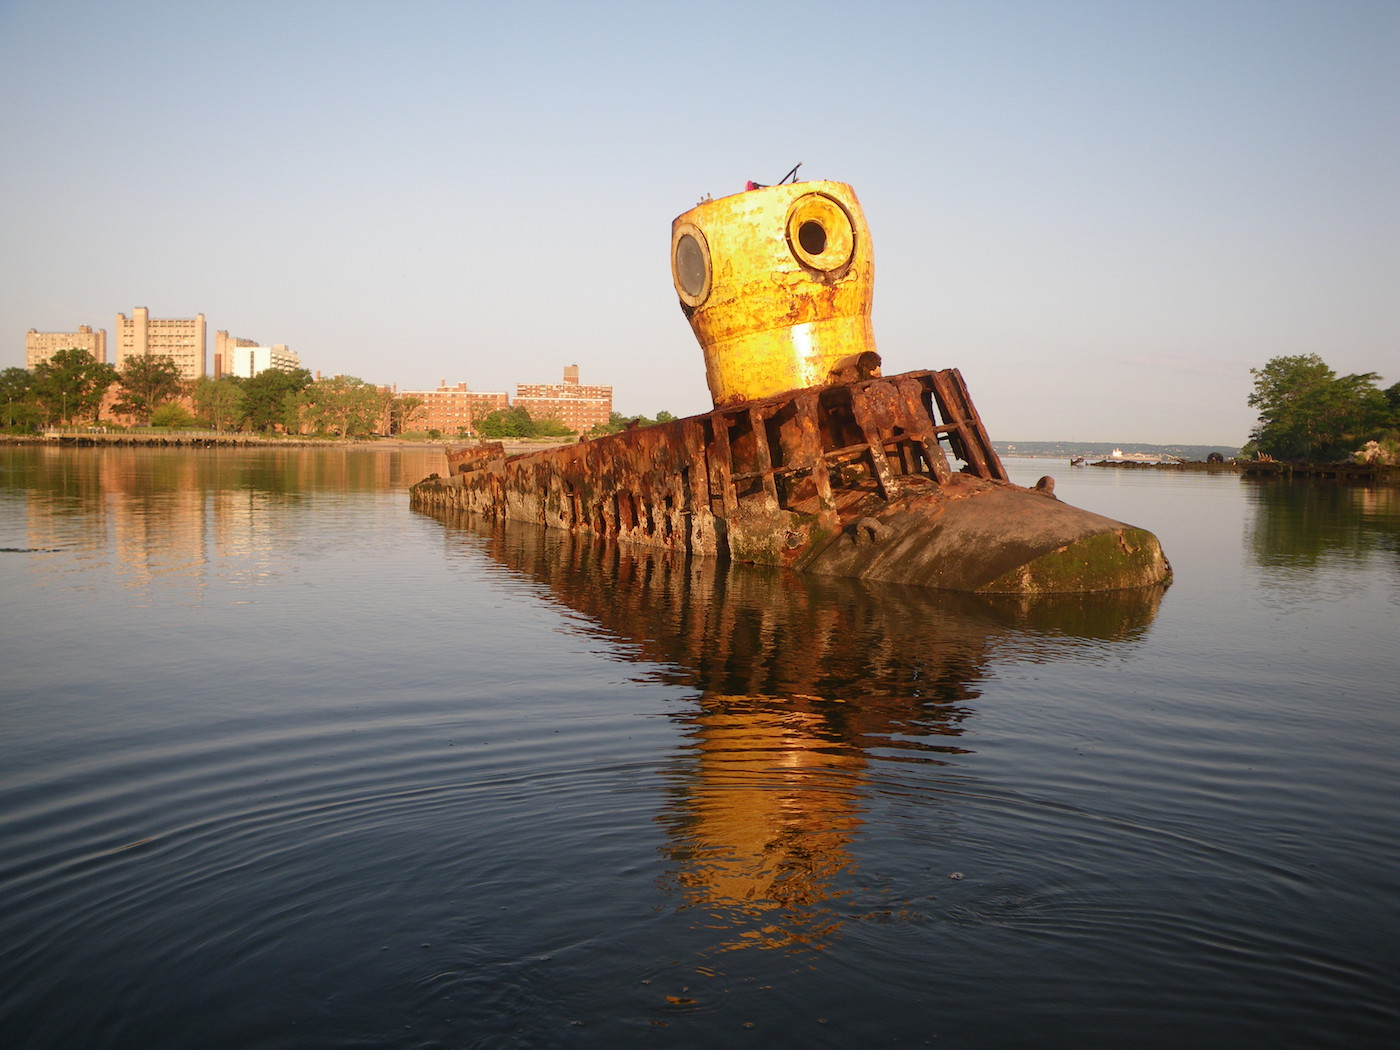 """Marie Lorenz, """"Yellow Submarine, Coney Island Creek from The Tide and Current Taxi"""" (2005 – present), digital photograph (courtesy of the artist)"""